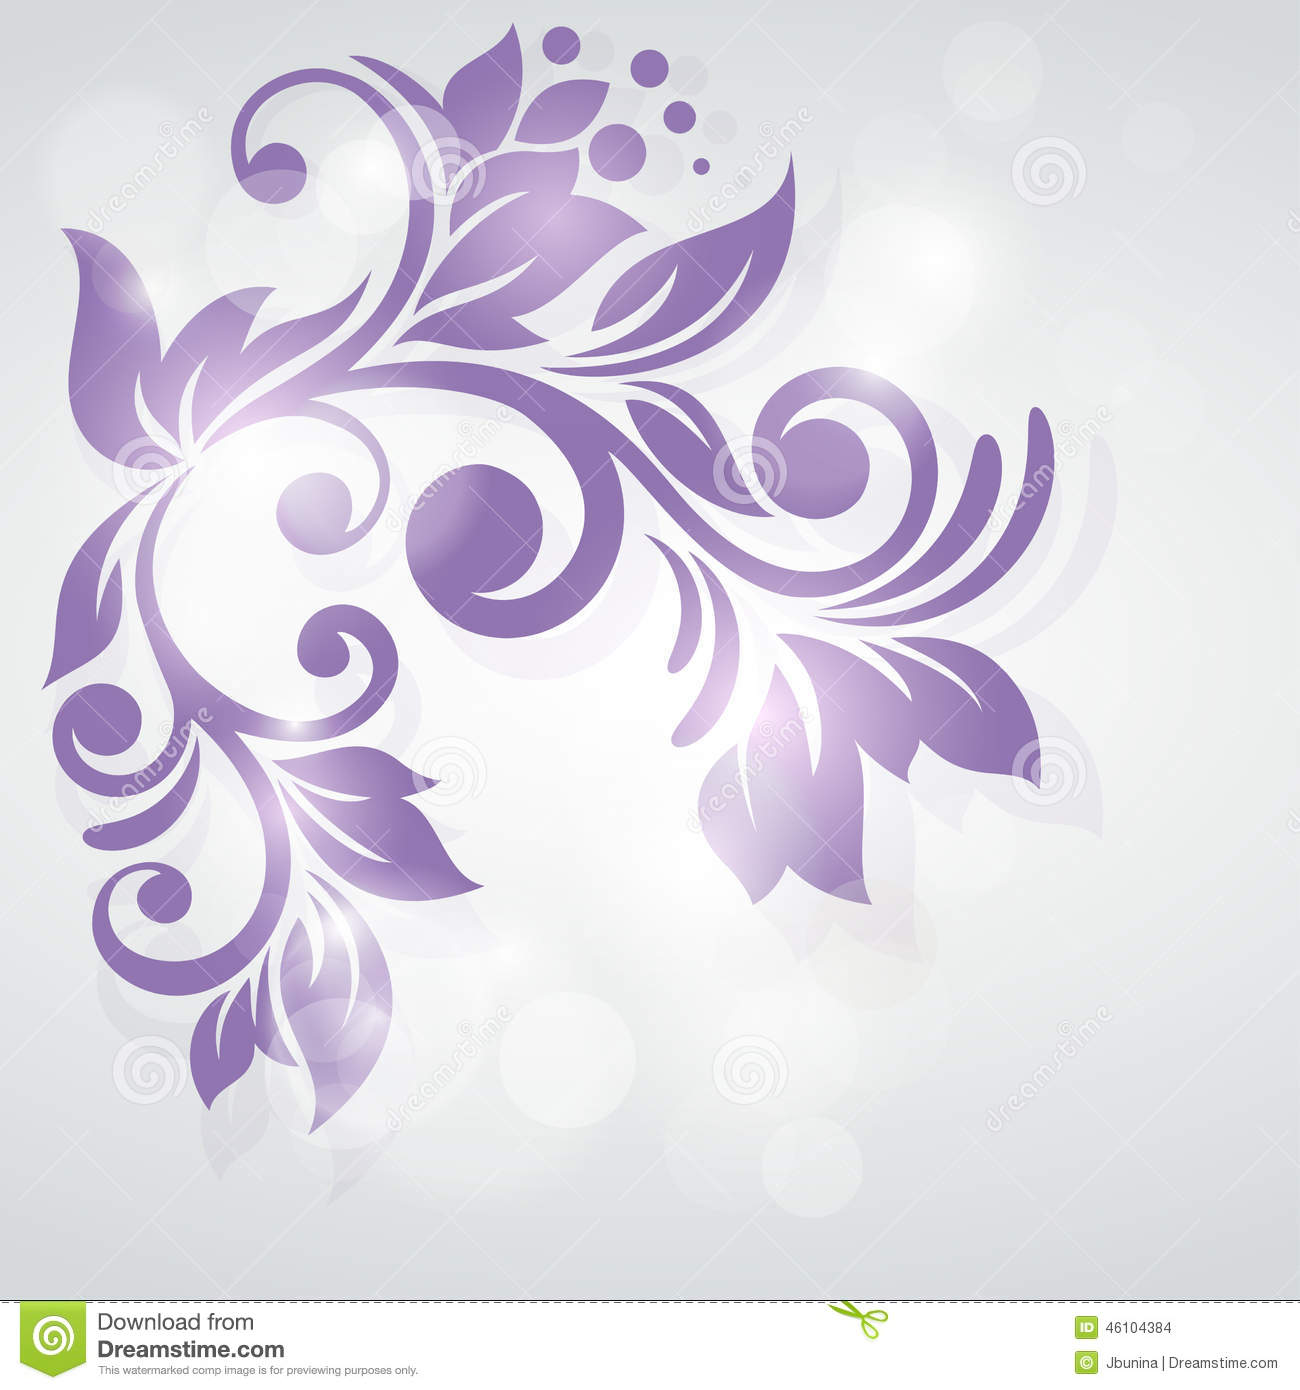 Abstract floral design. Frozen swirl.